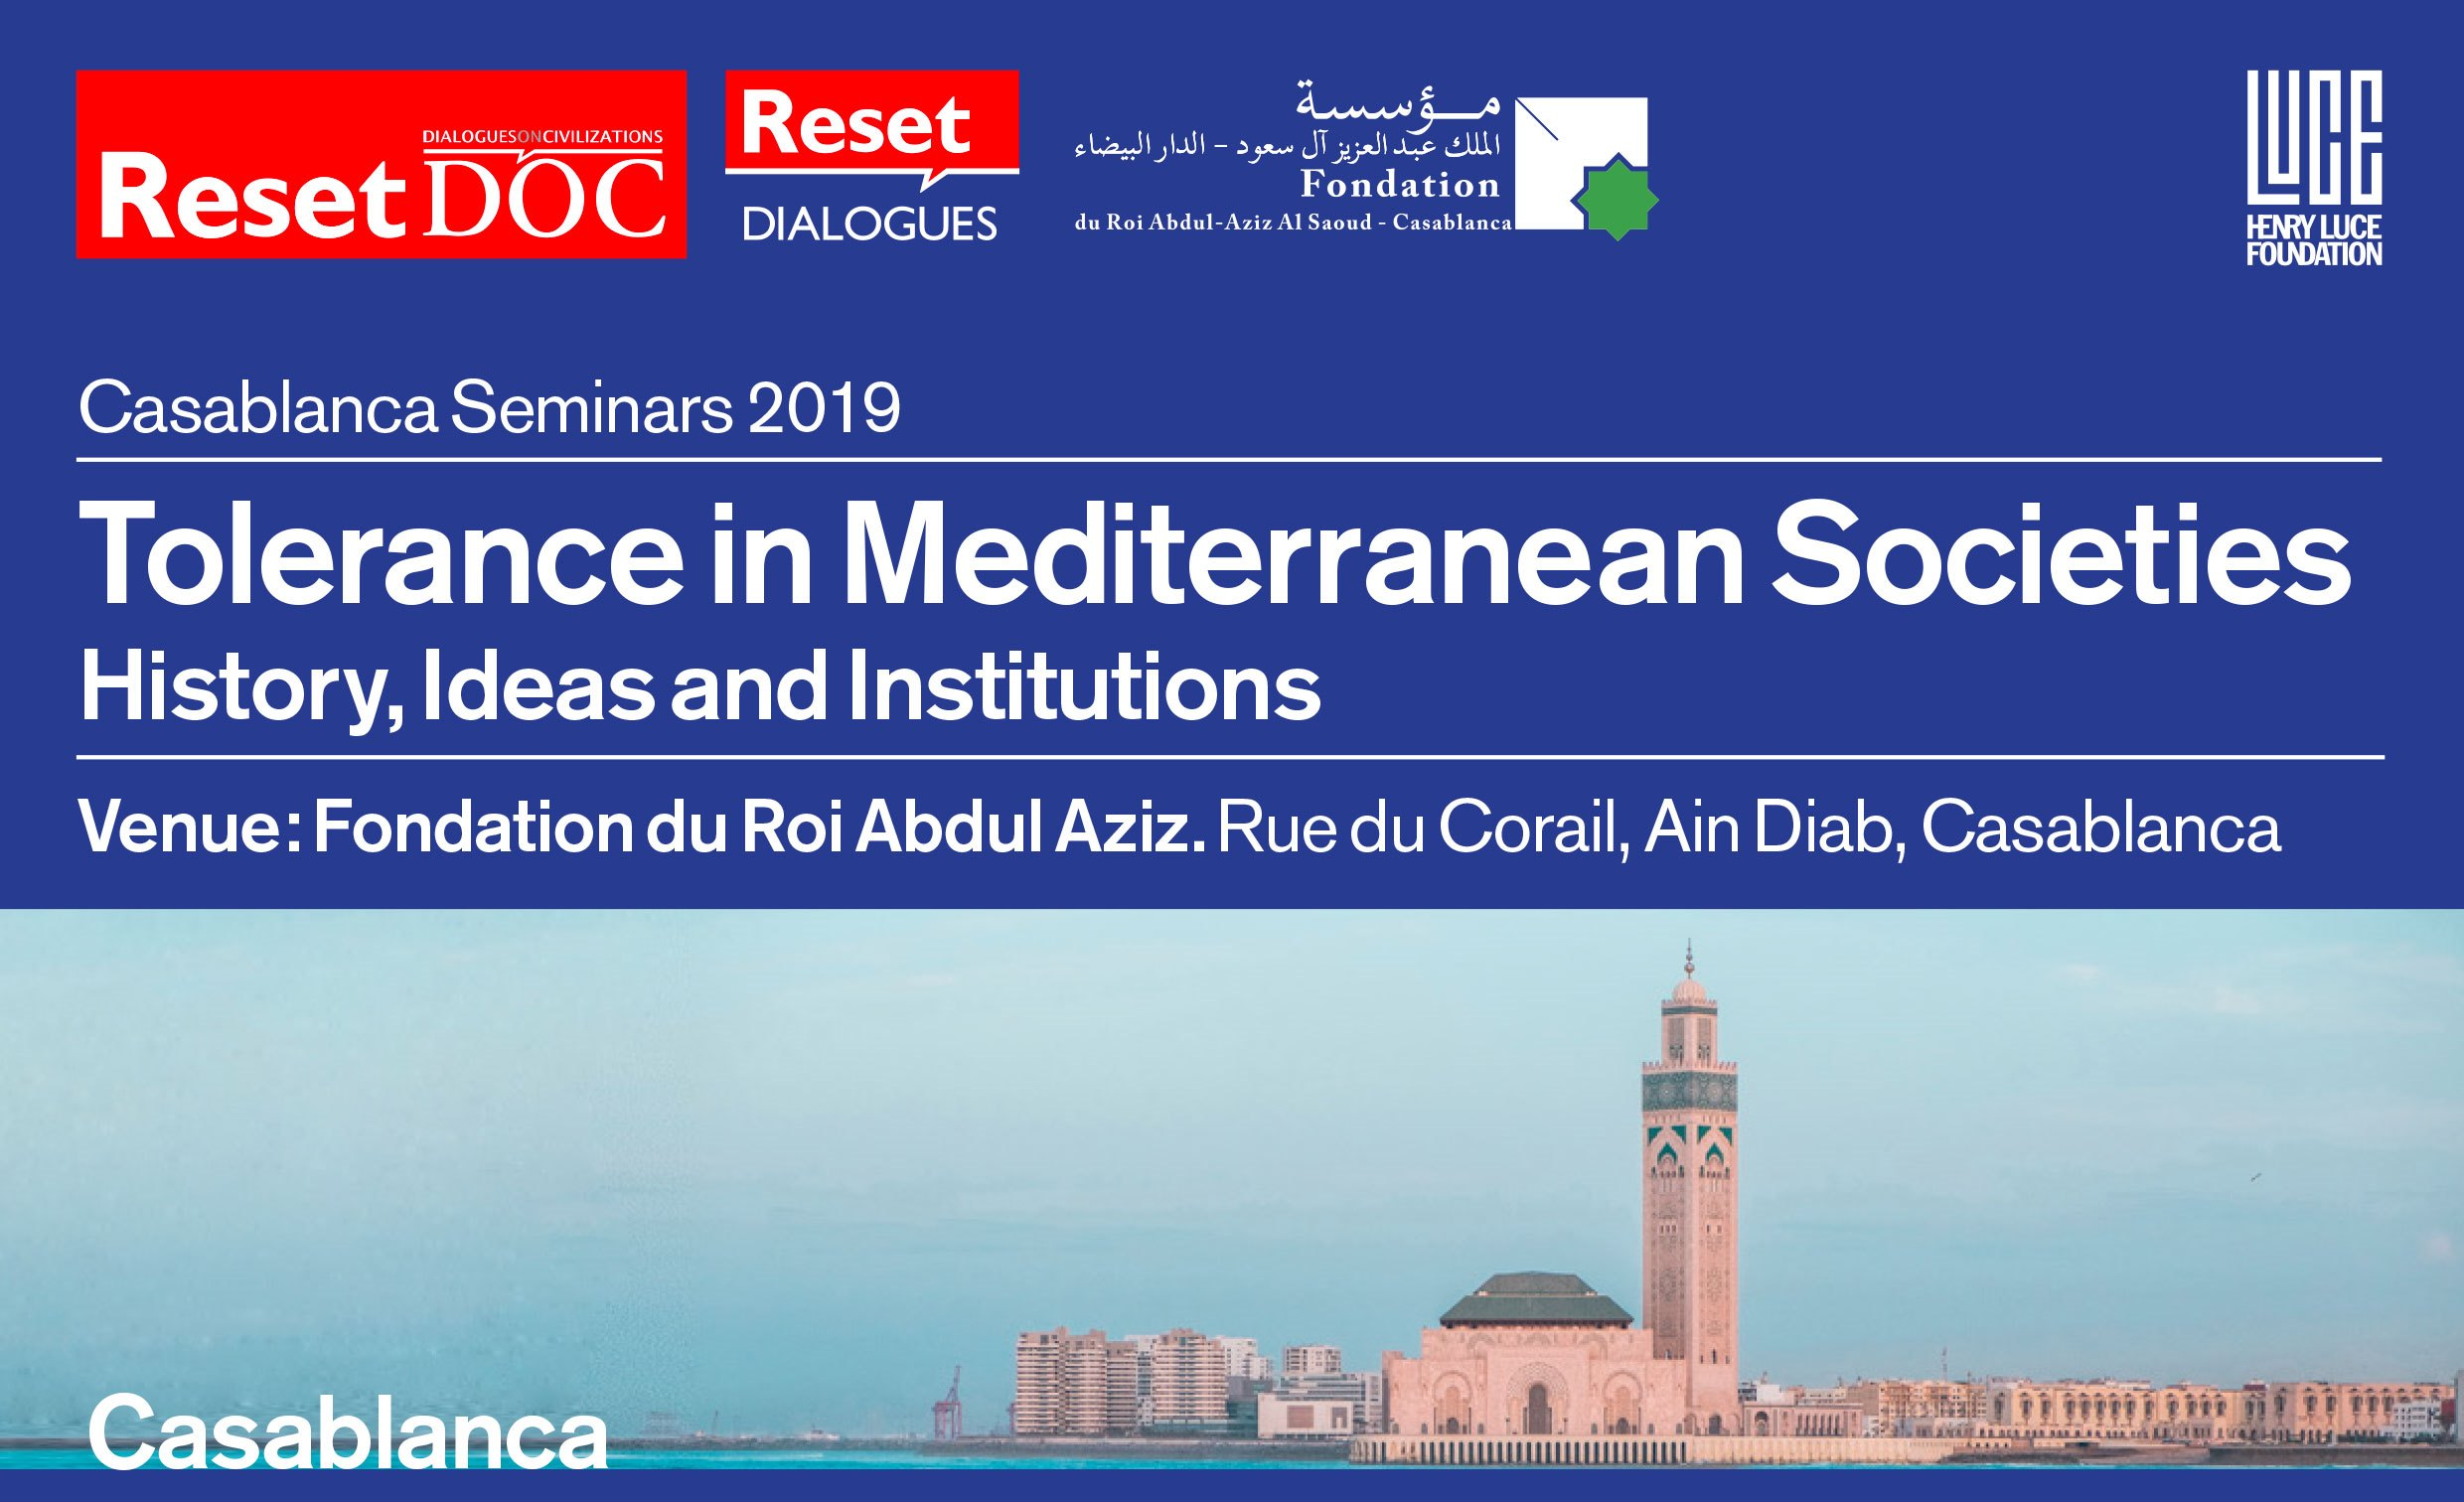 Tolerance in Mediterranean Societies History, Ideas and Institutions